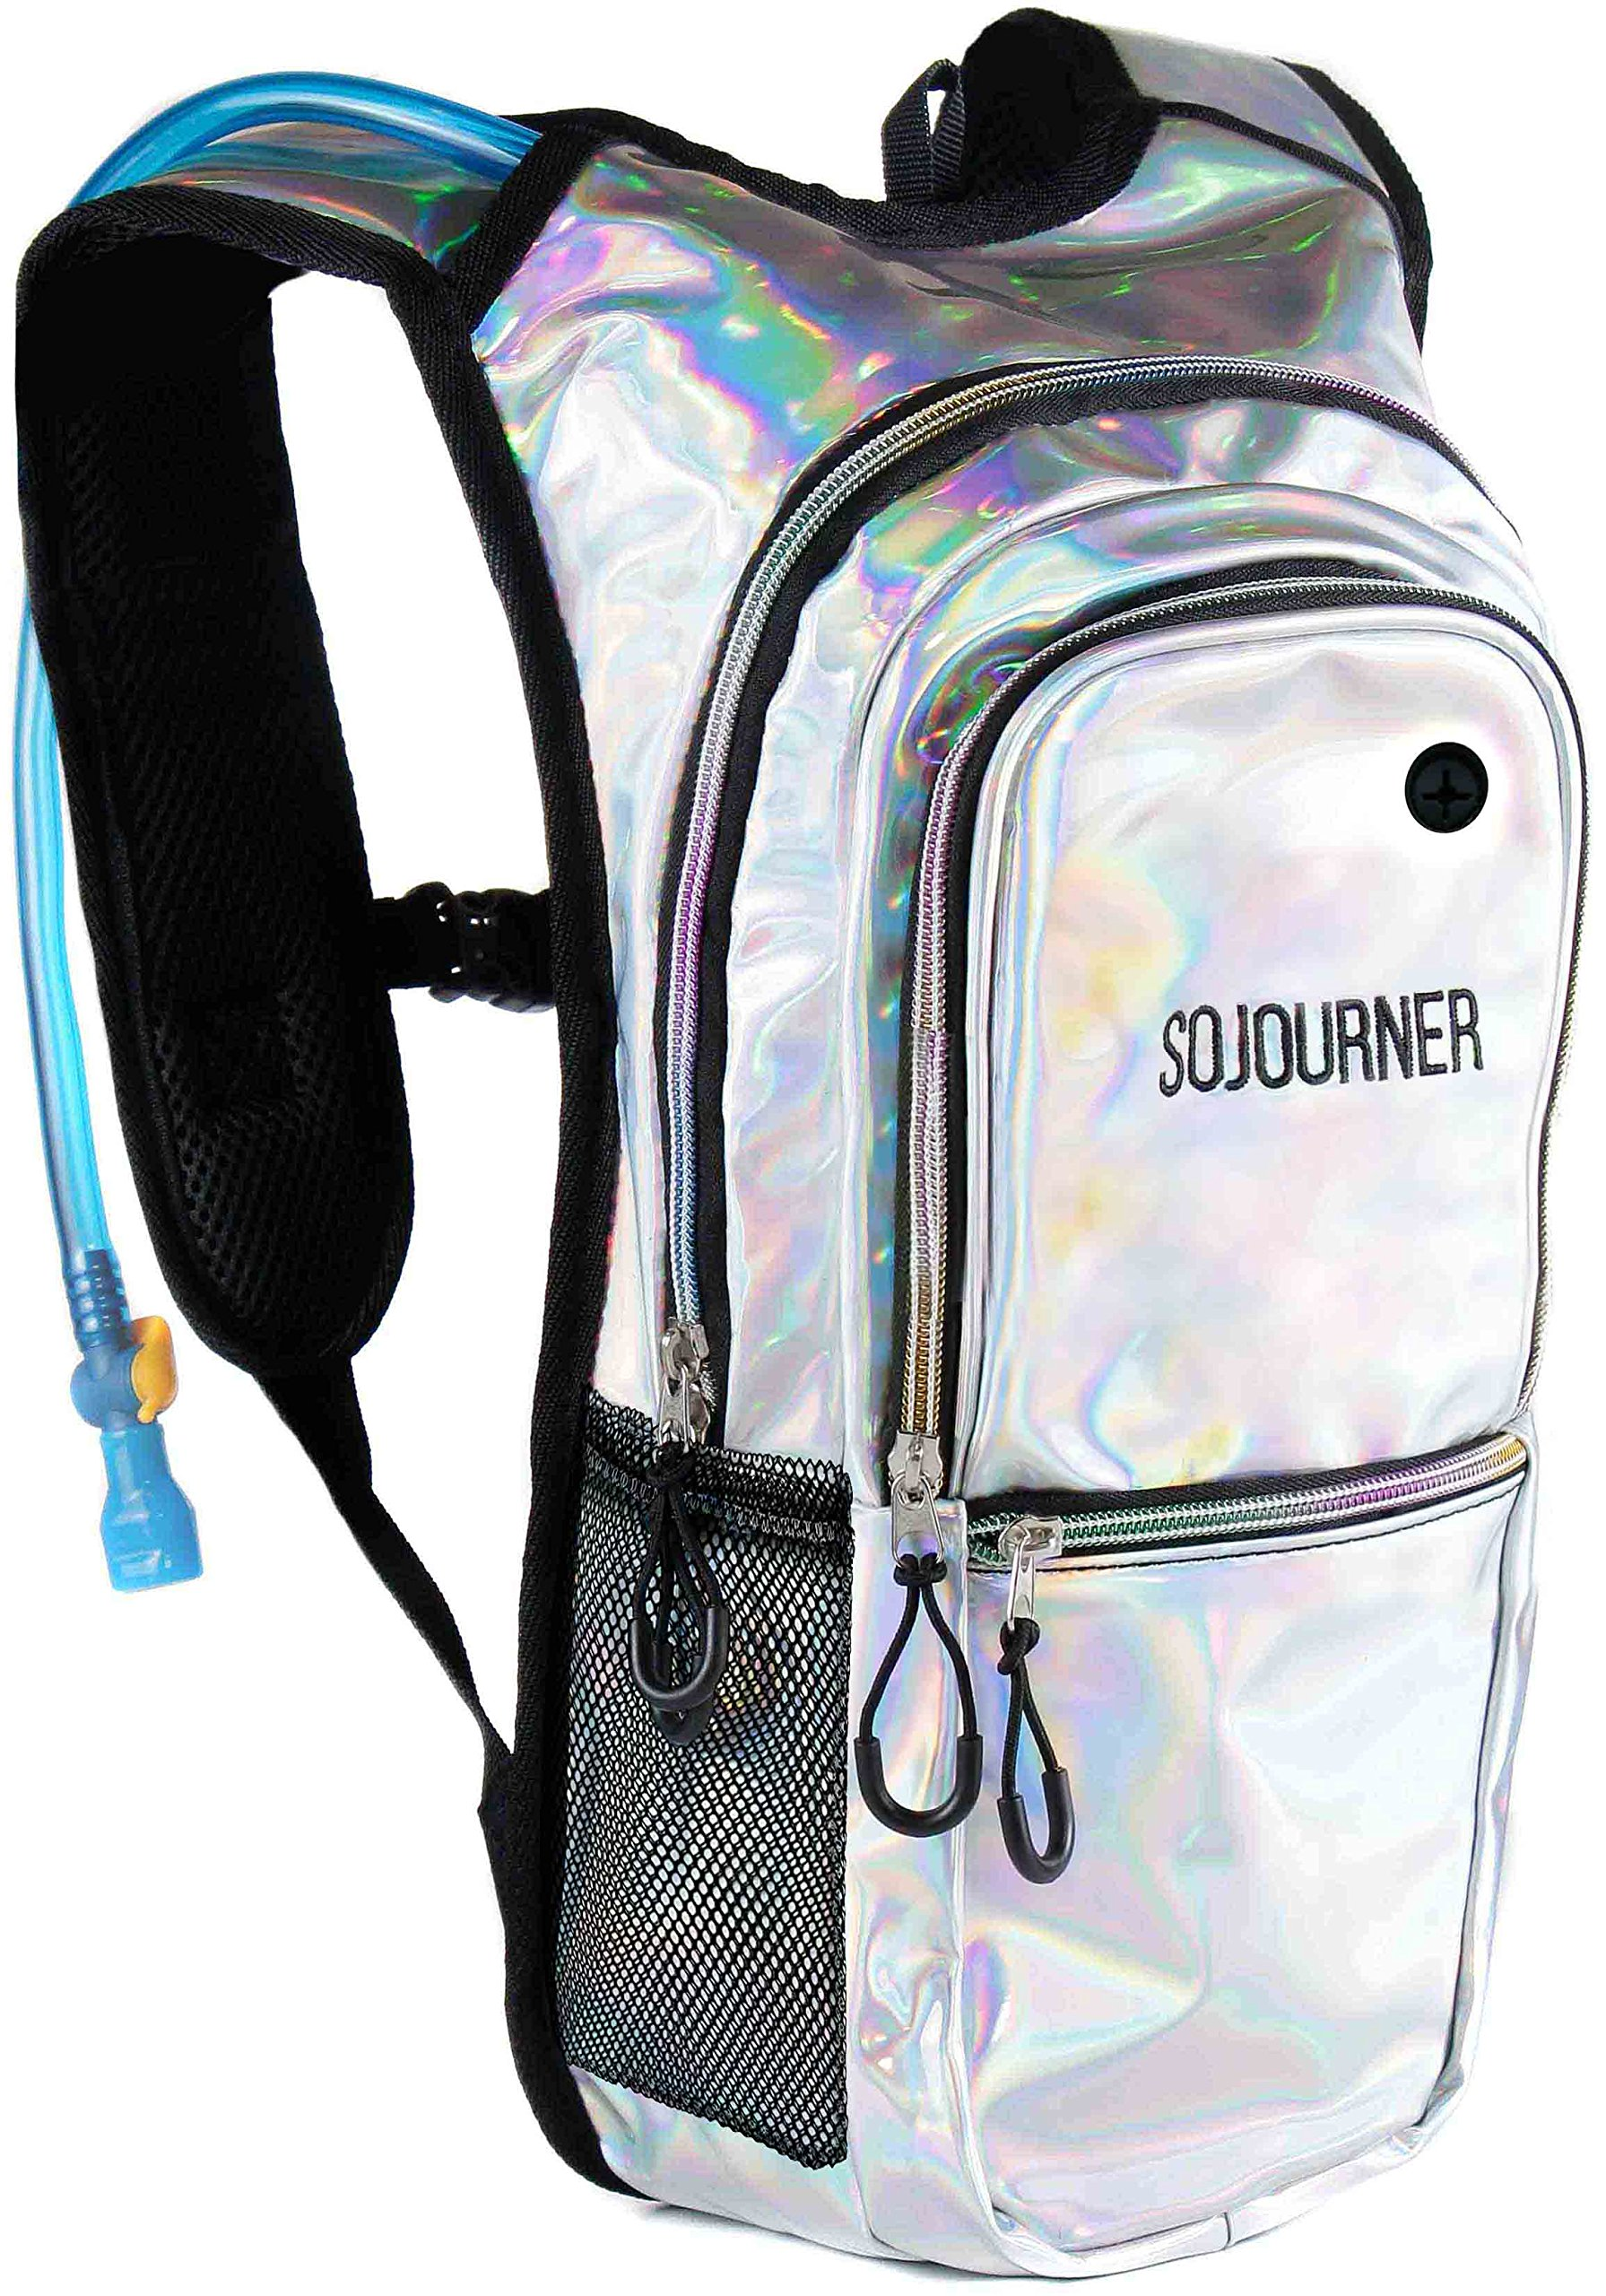 Sojourner Rave Hydration Pack Backpack - 2L Water Bladder Included for Festivals, Raves, Hiking, Biking, Climbing, Running and More (Multiple Styles) (Holographic - Silver)